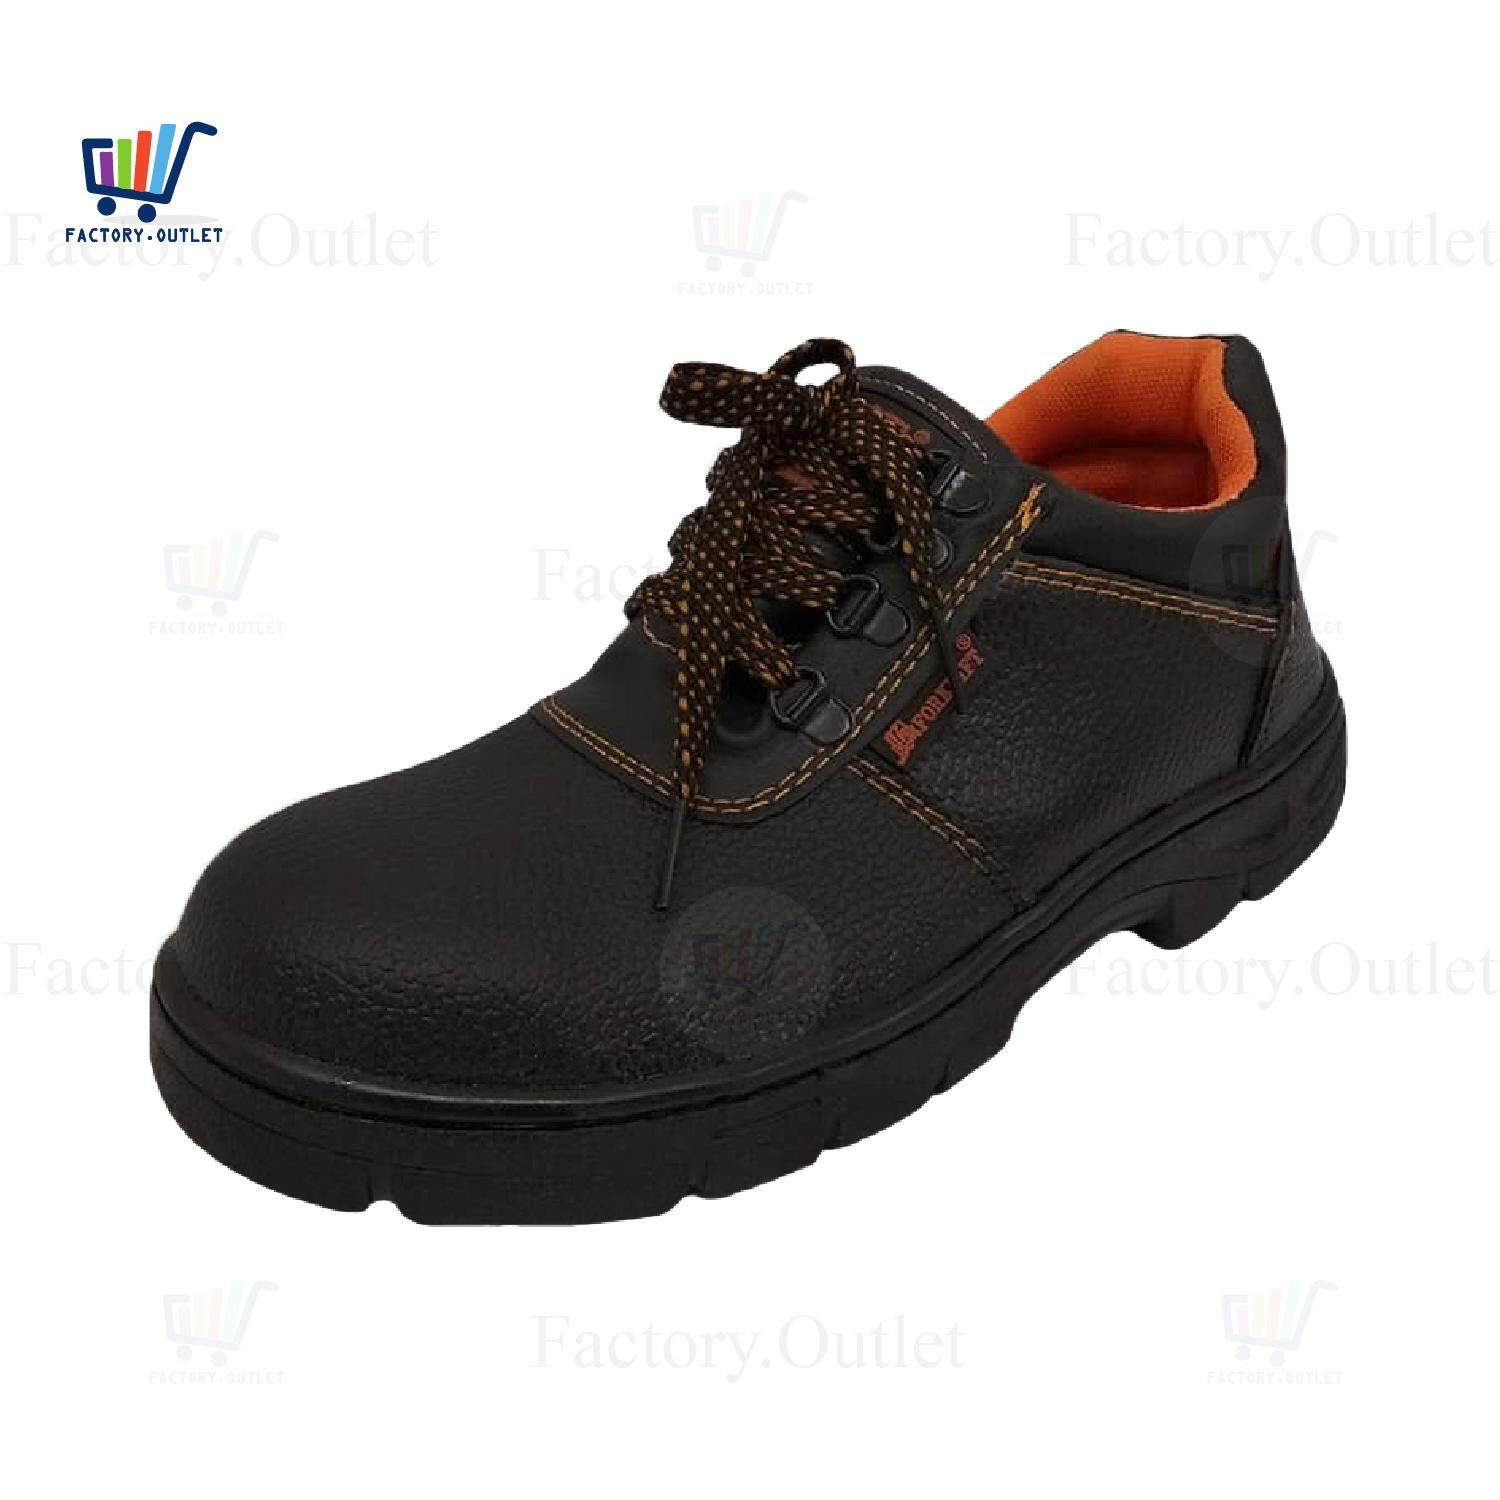 1c0f43125e6 Safety Boot Shoe Low Cut Safety Boot Forklift